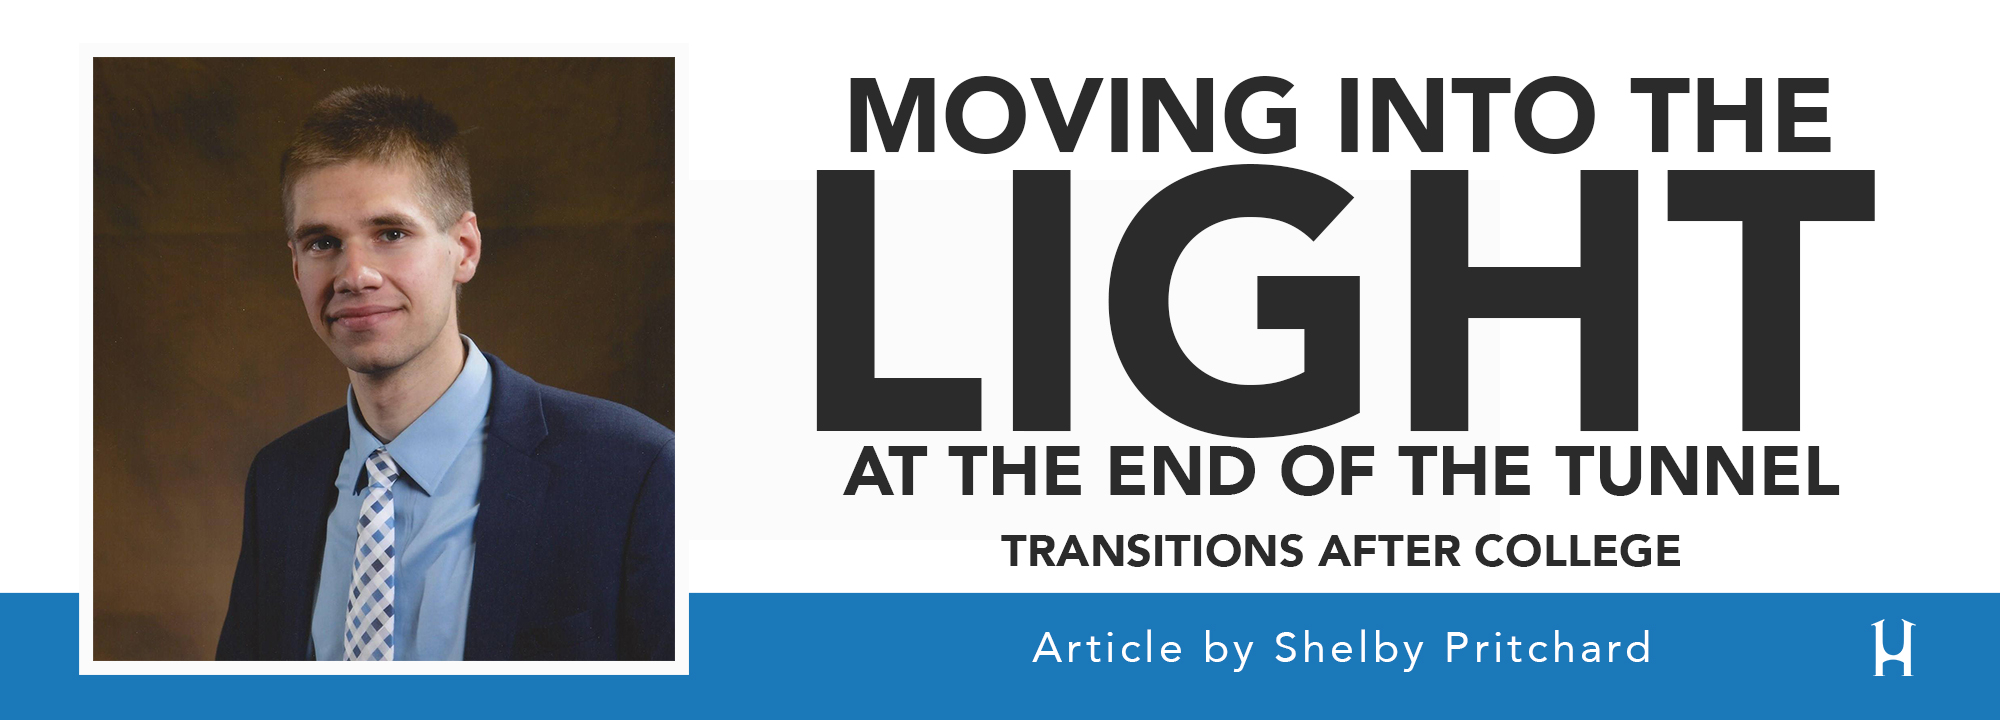 Moving Into the Light at the End of the Tunnel [ARTICLE - Shelby Pritchard]